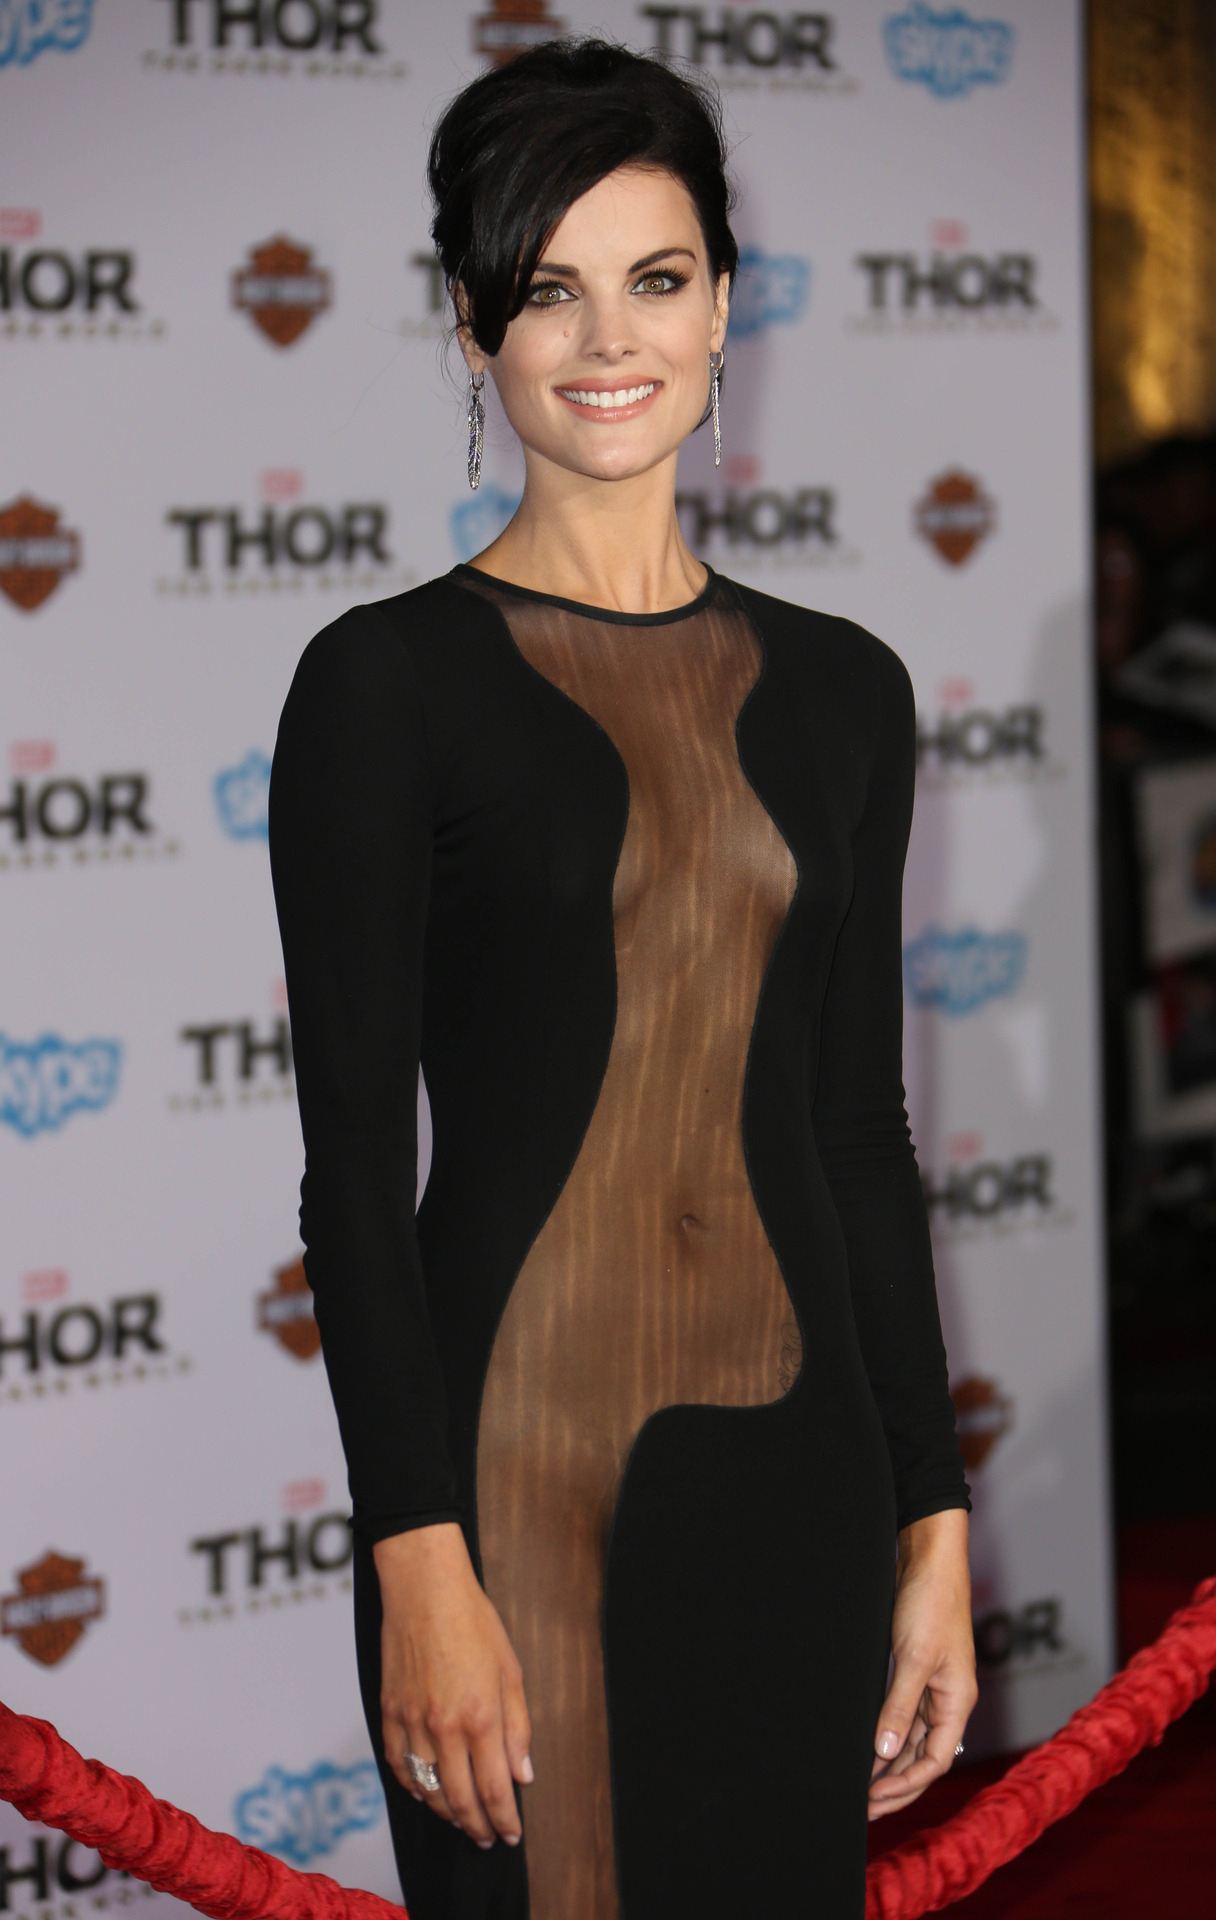 Jaimie-Alexander-Thor-and-Agents-of-SHIELD